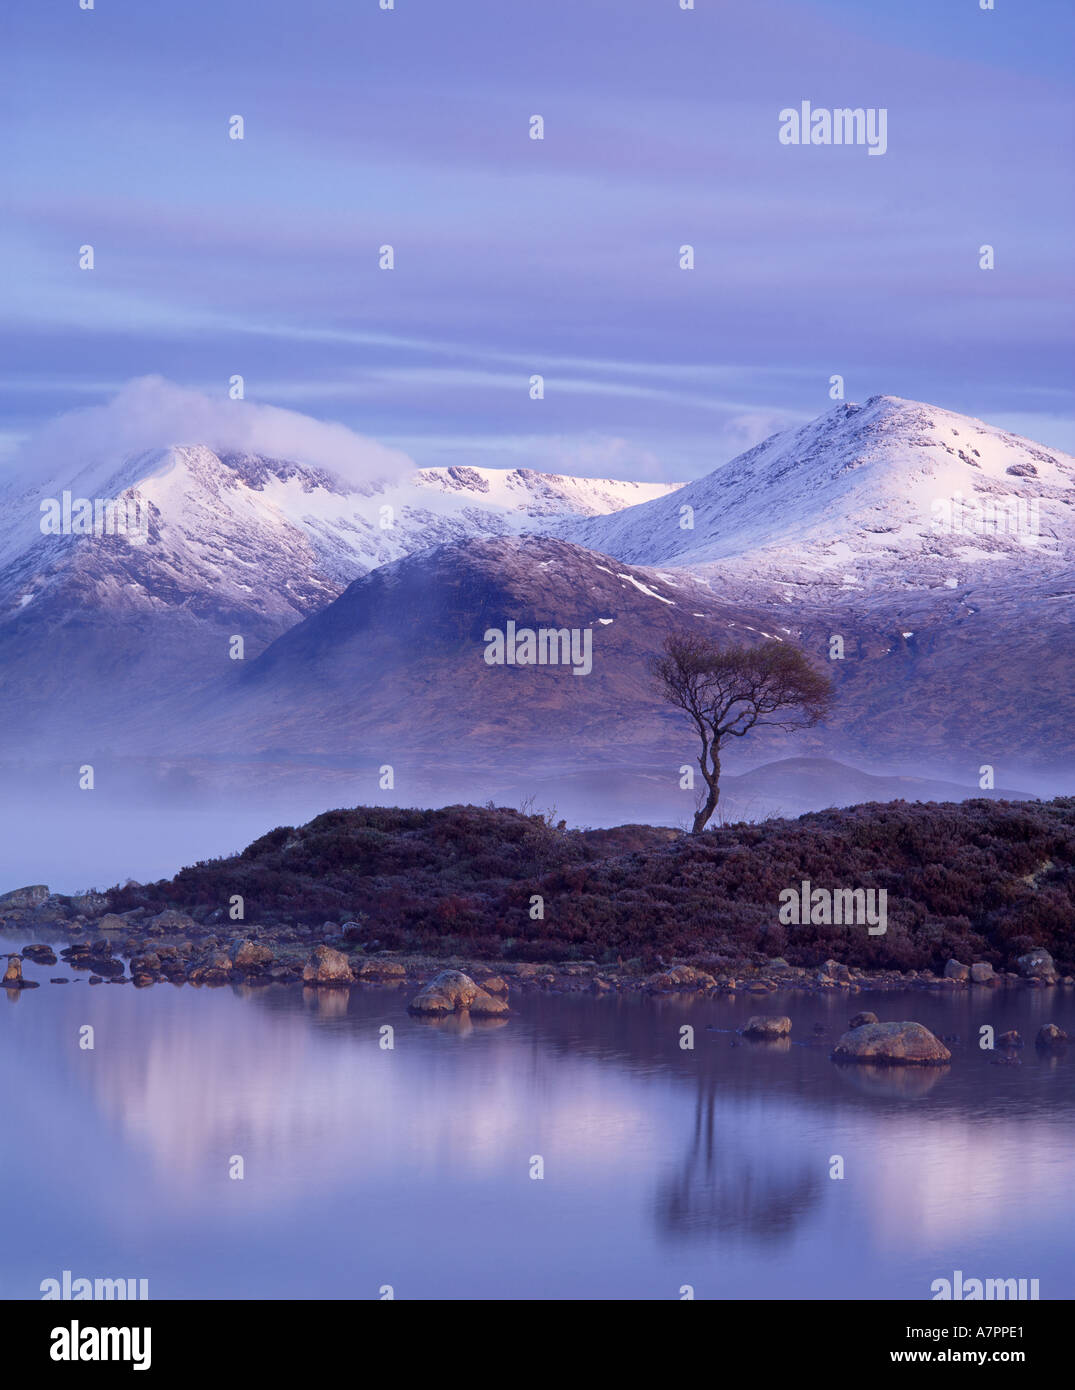 Lochan na h Achlaise, Meall a Bhuiridh and the Black Mount, Rannoch Moor, Lochaber, Highland, Scotland, UK - Stock Image